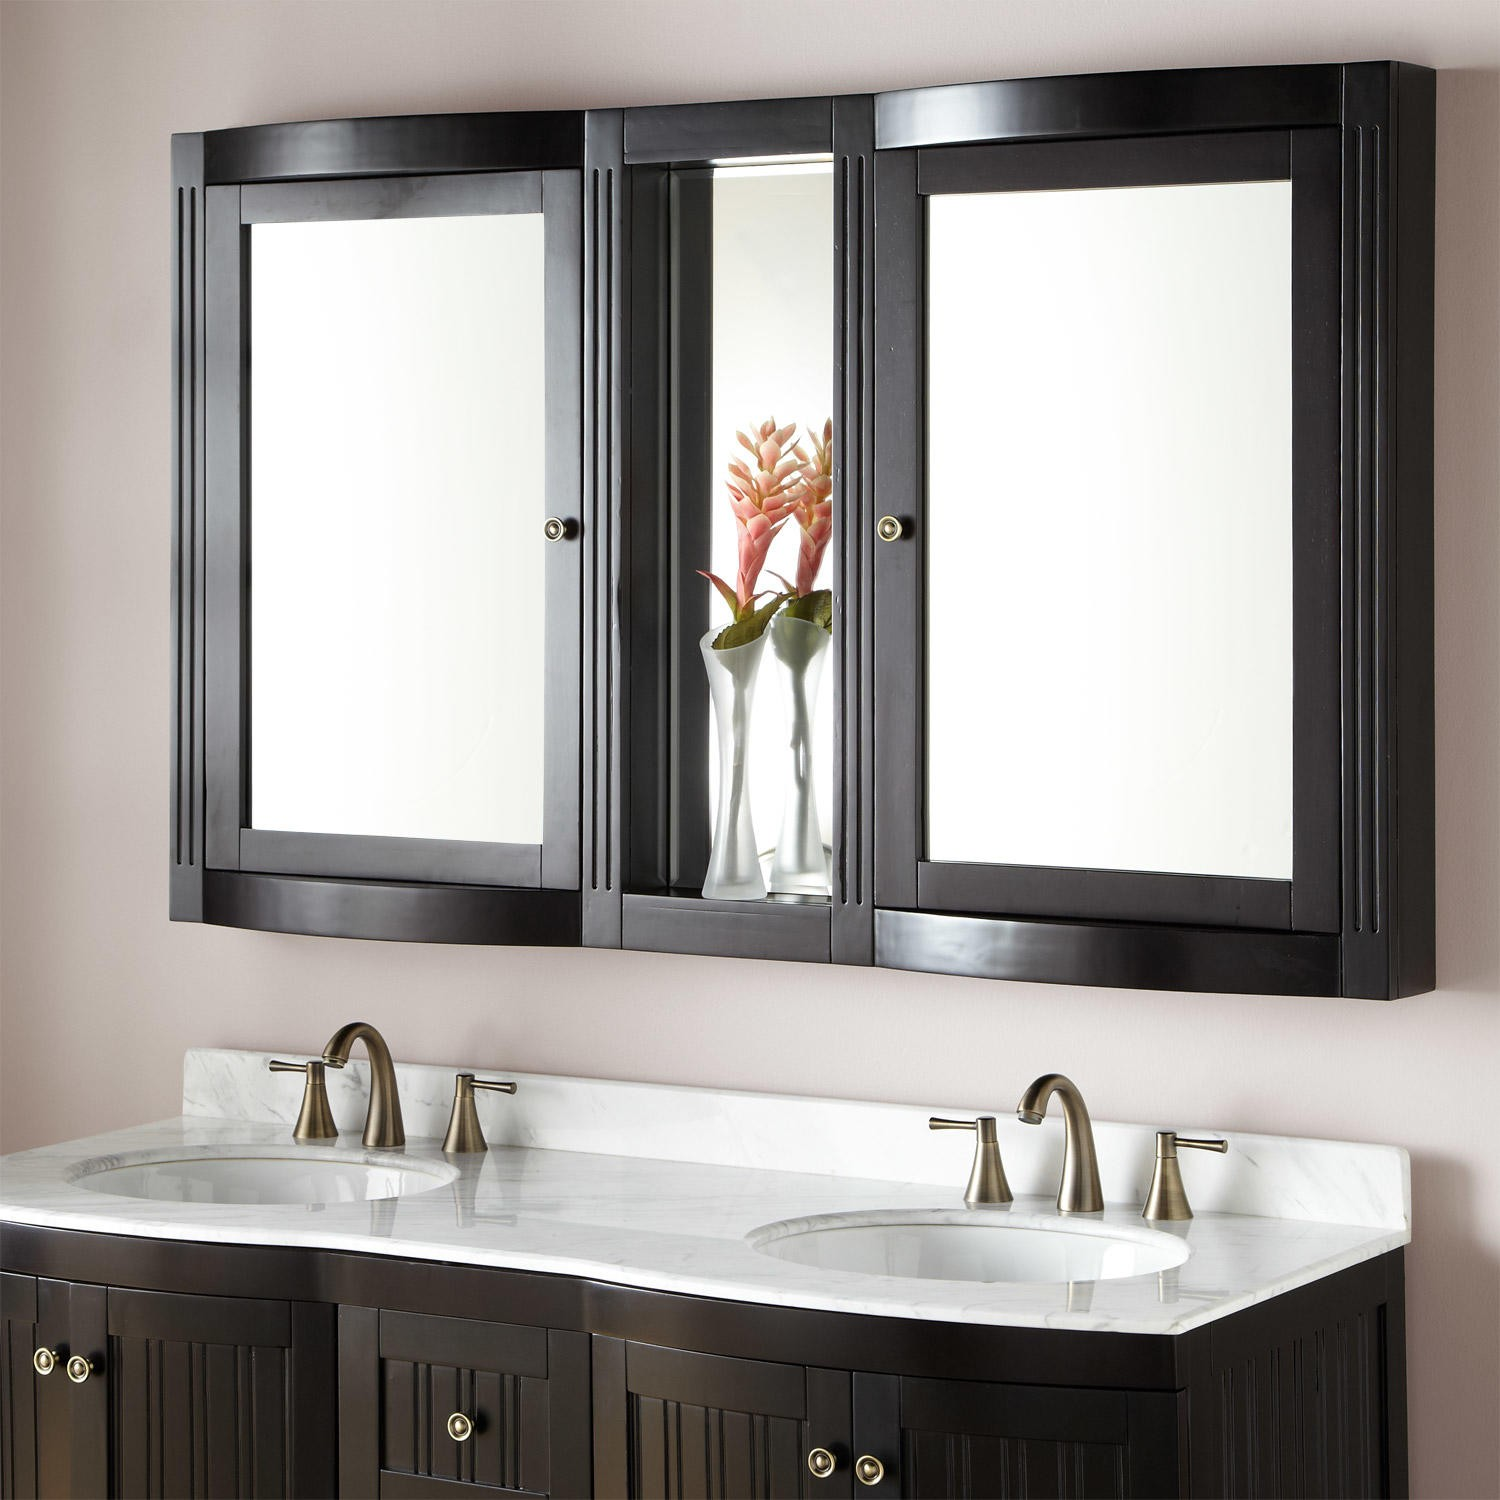 Beautiful bathroom mirror cabinets this luxurious wall cabinet features two mirrored cabinets, with an open  shelf imfhypq